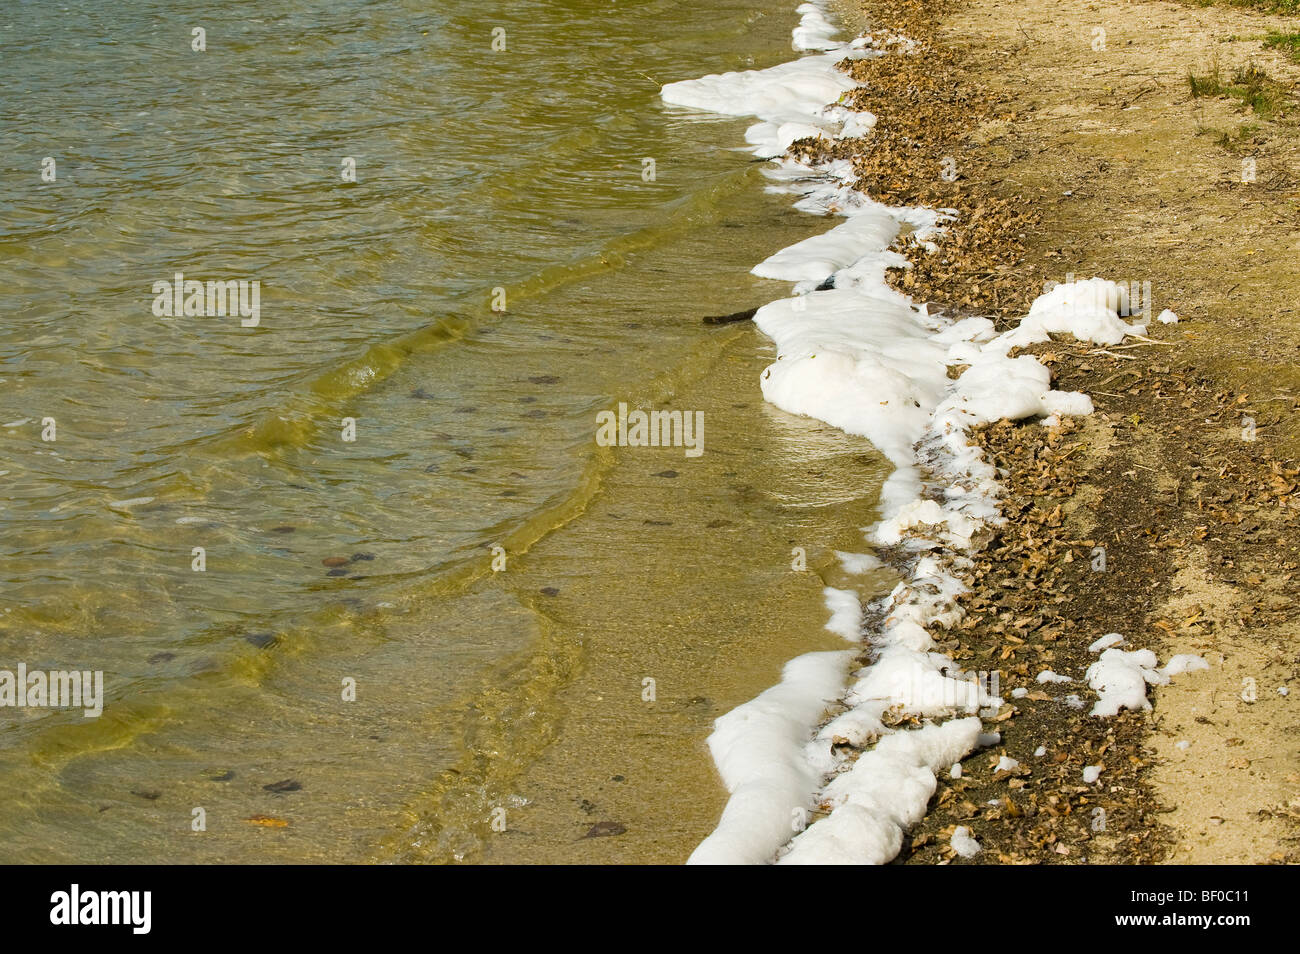 environmental pollution environment water pond bank river beach sand surface foam foaming dirt mud waterline line - Stock Image